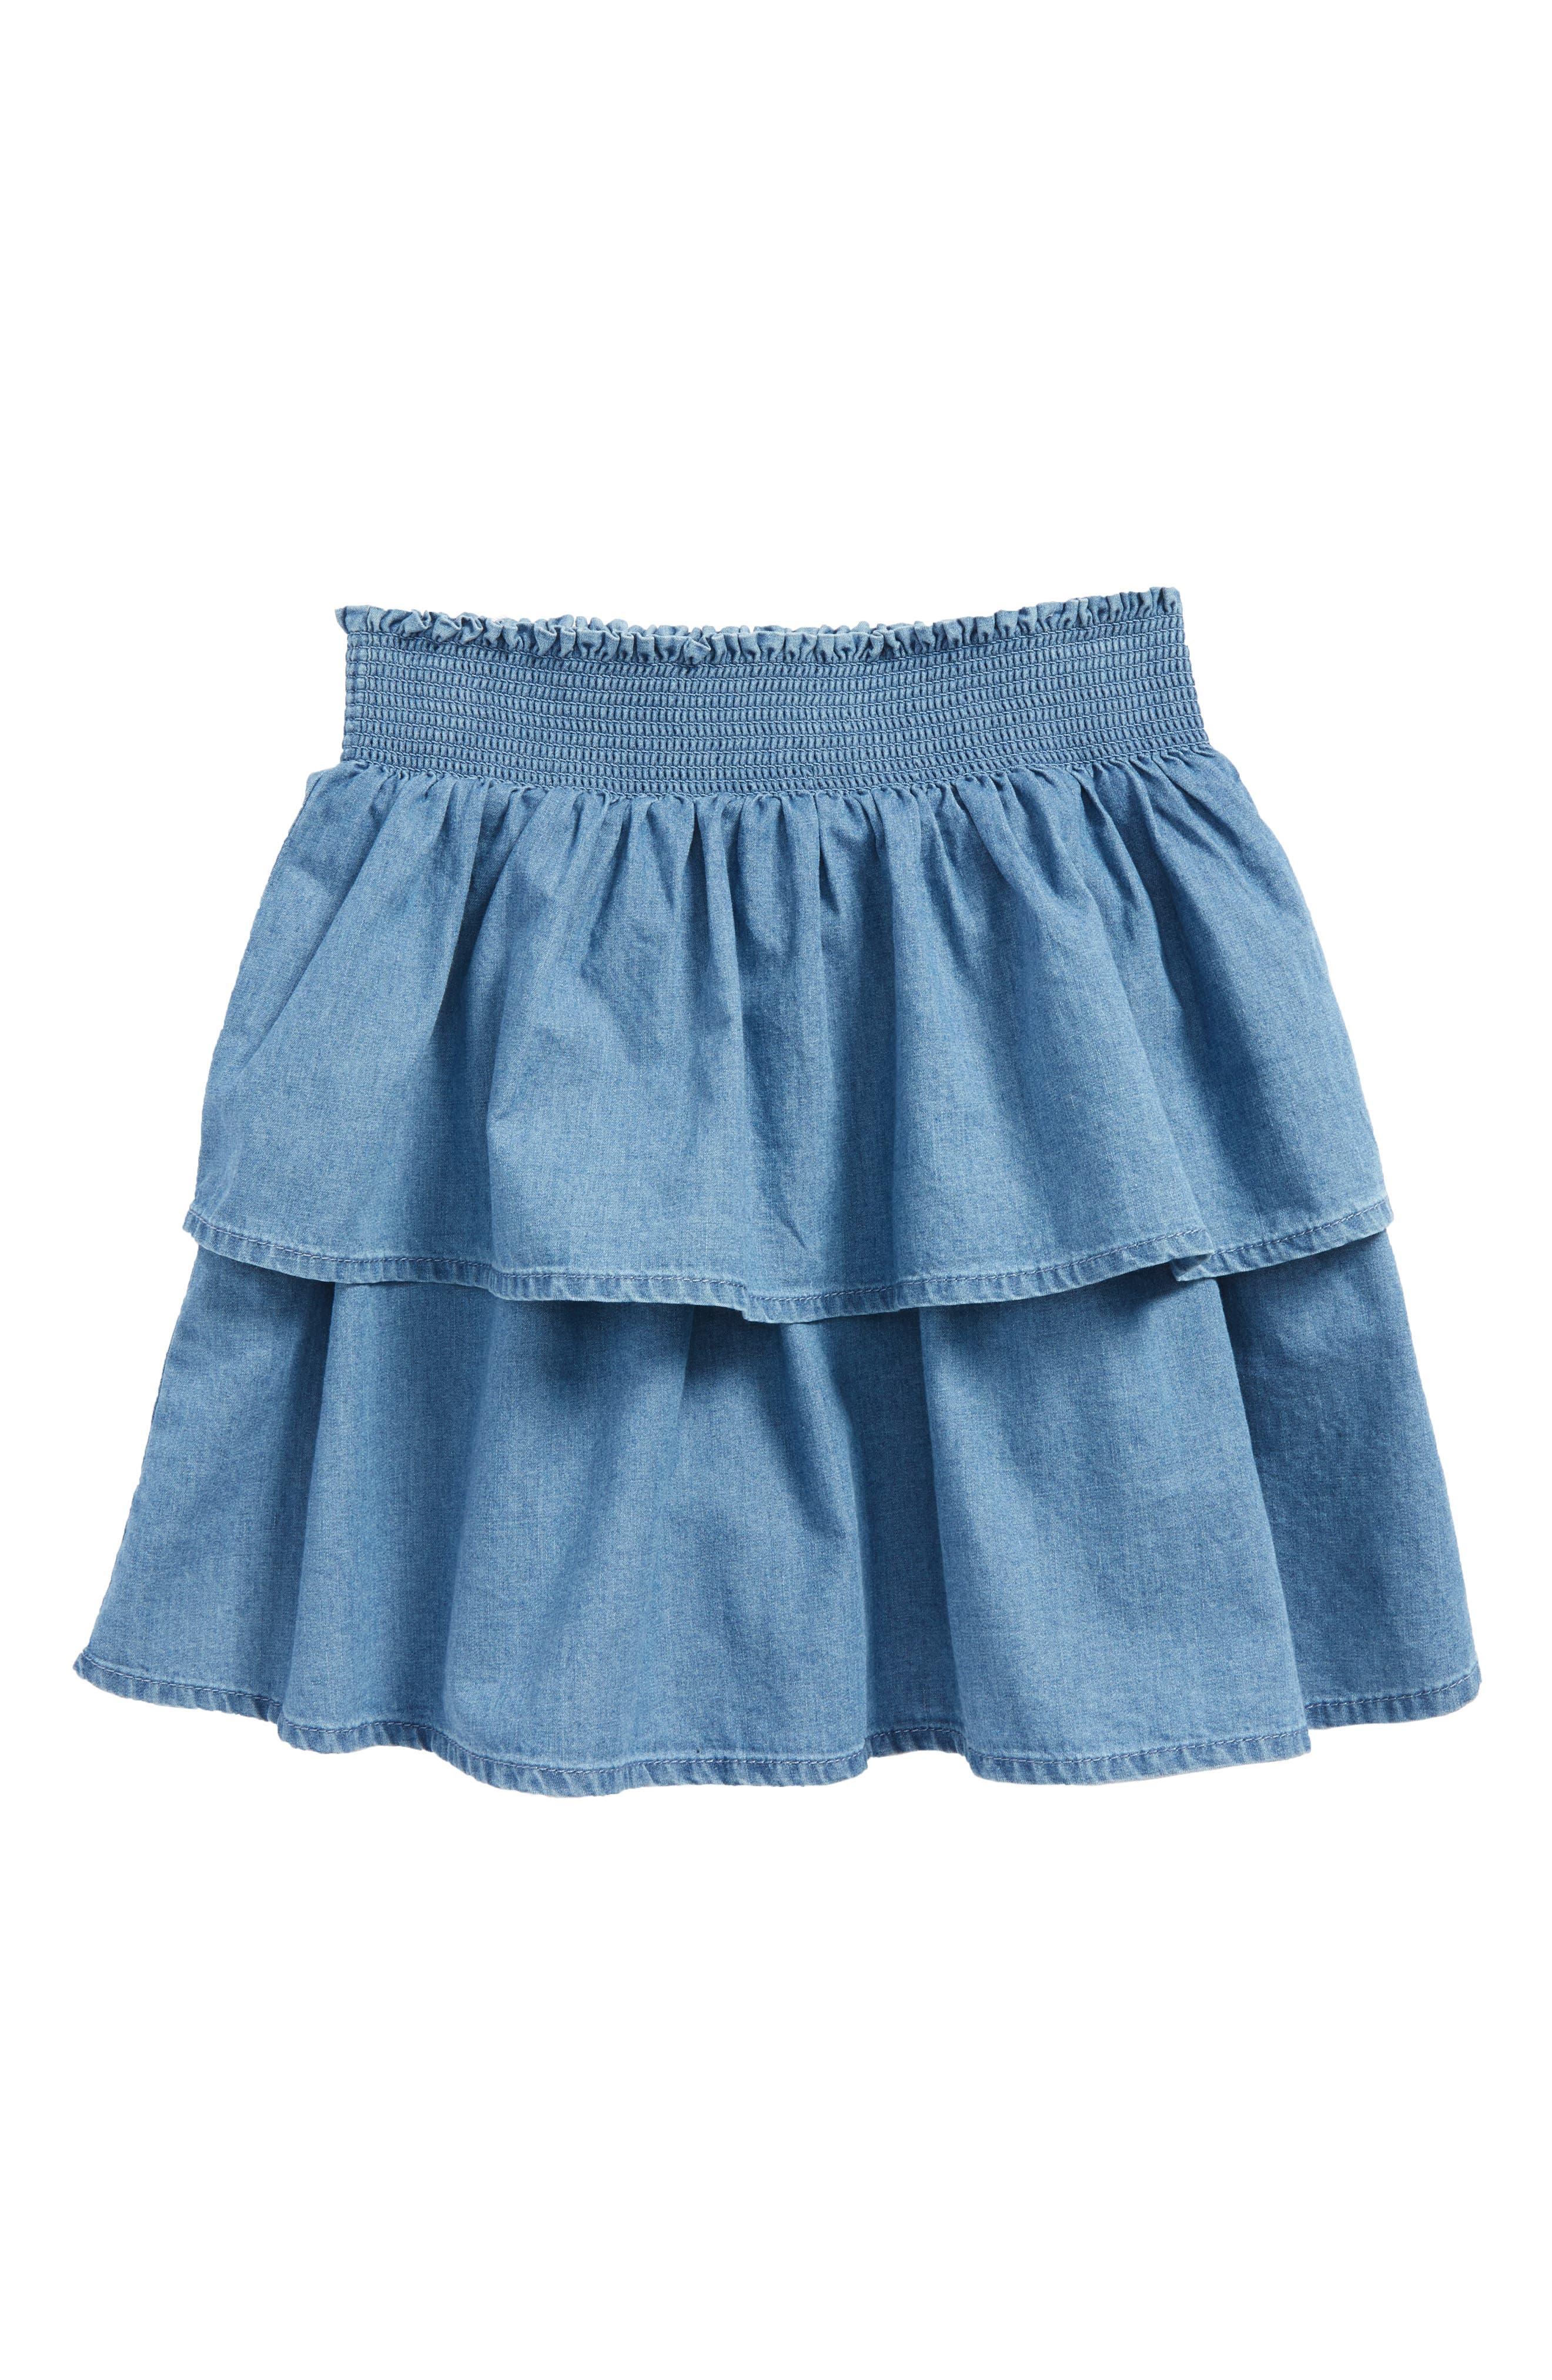 Ruffle Denim Skirt,                         Main,                         color, 409